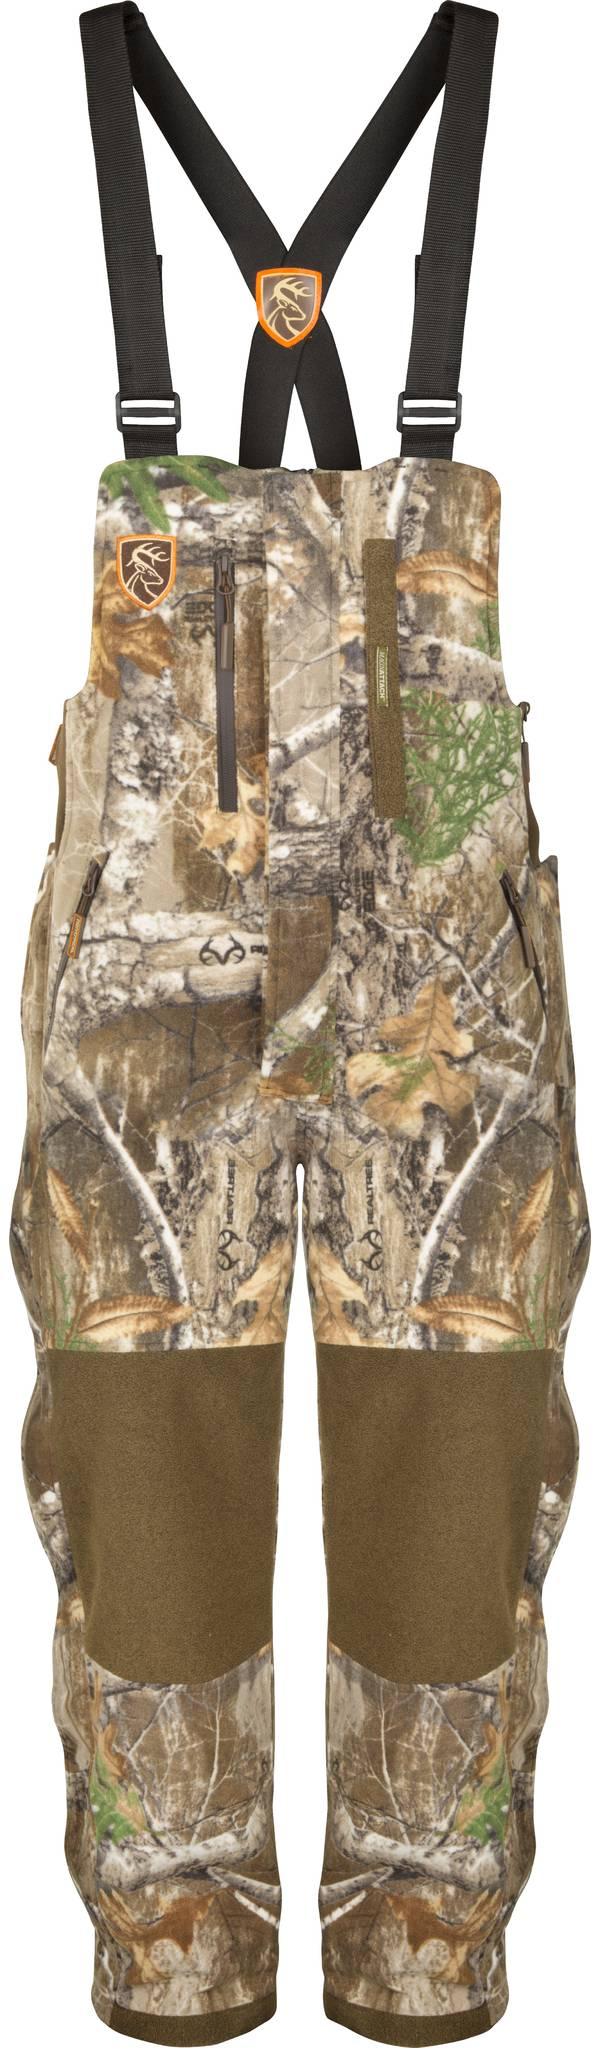 Drake Waterfowl Men's Non-Typical HydroHush Heavyweight Bibs with Agion Active XL product image